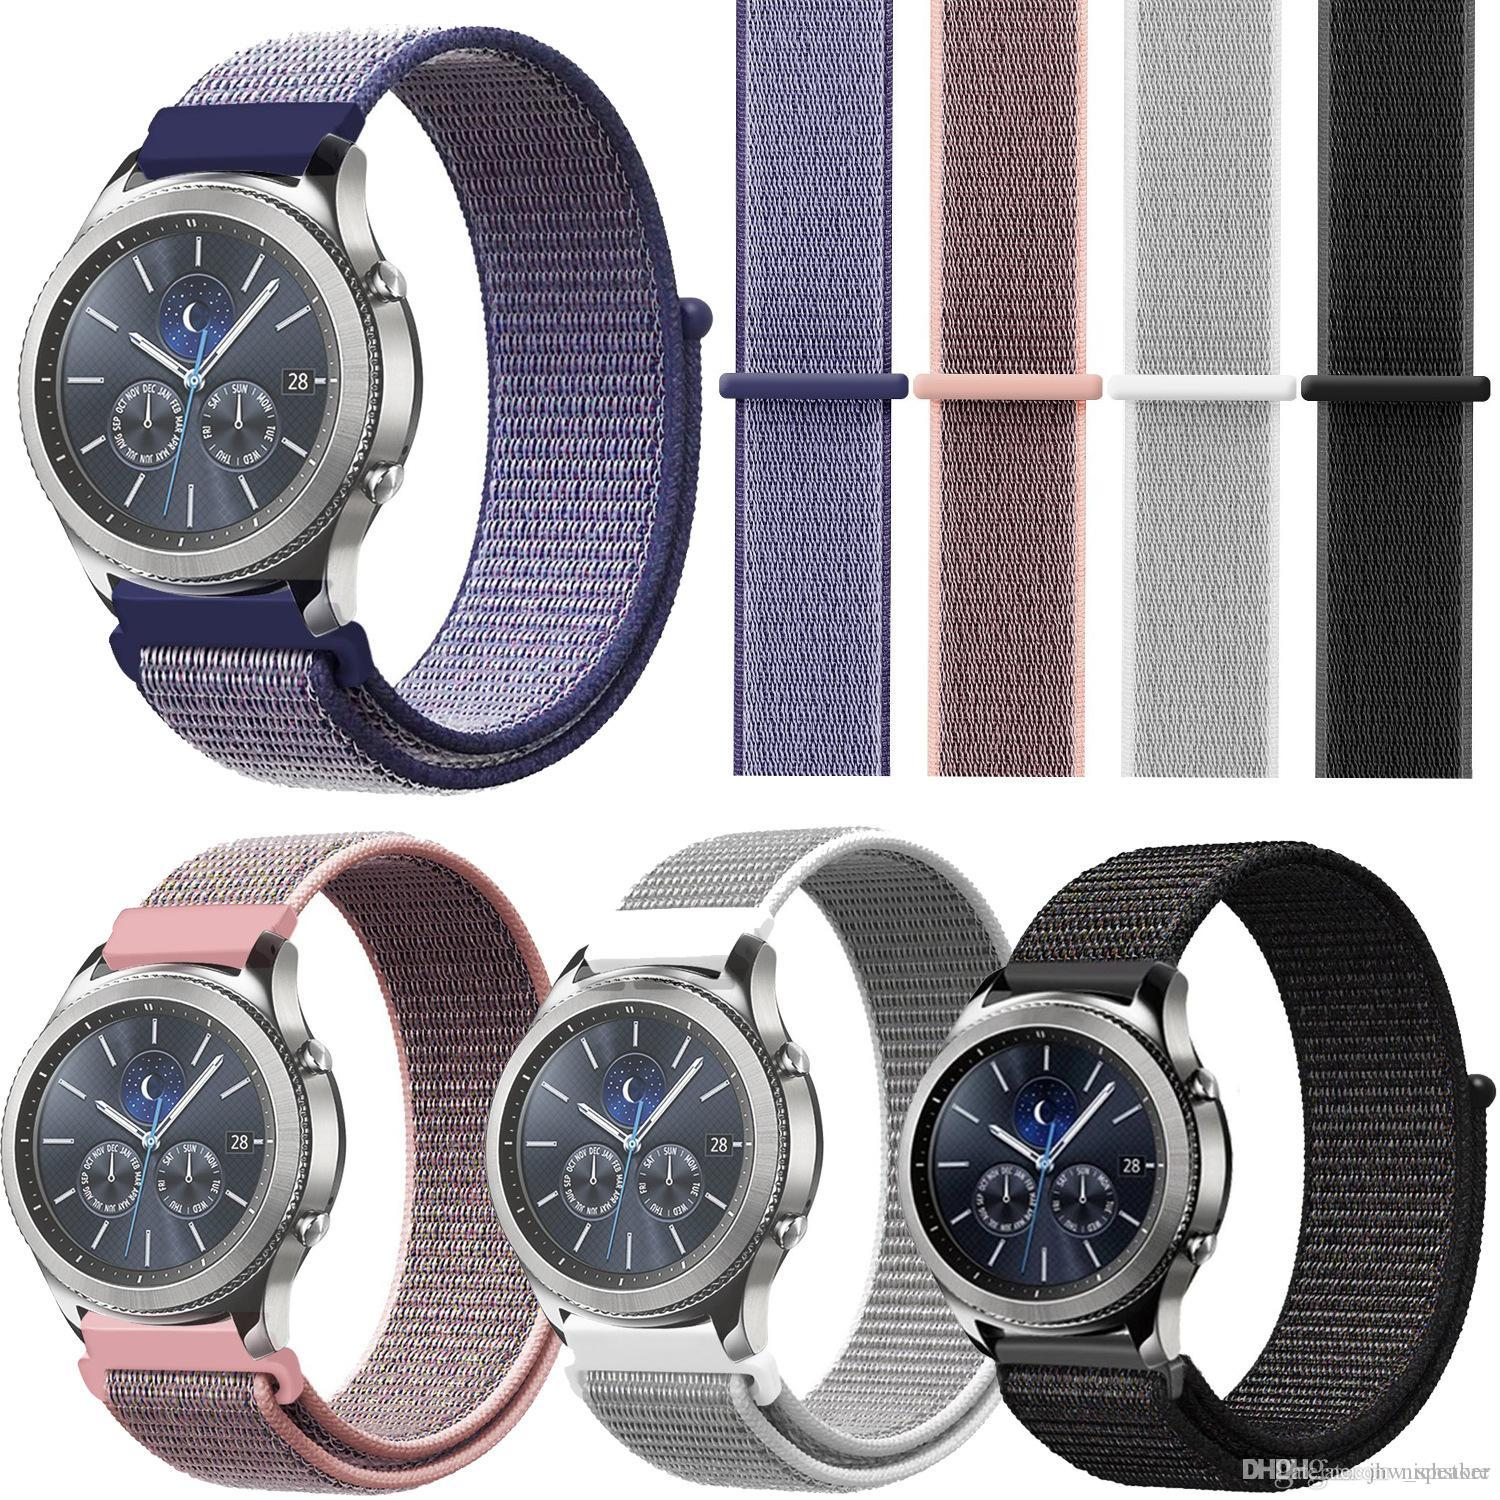 global black samsung classic the watches official site blue gear design galaxy up close